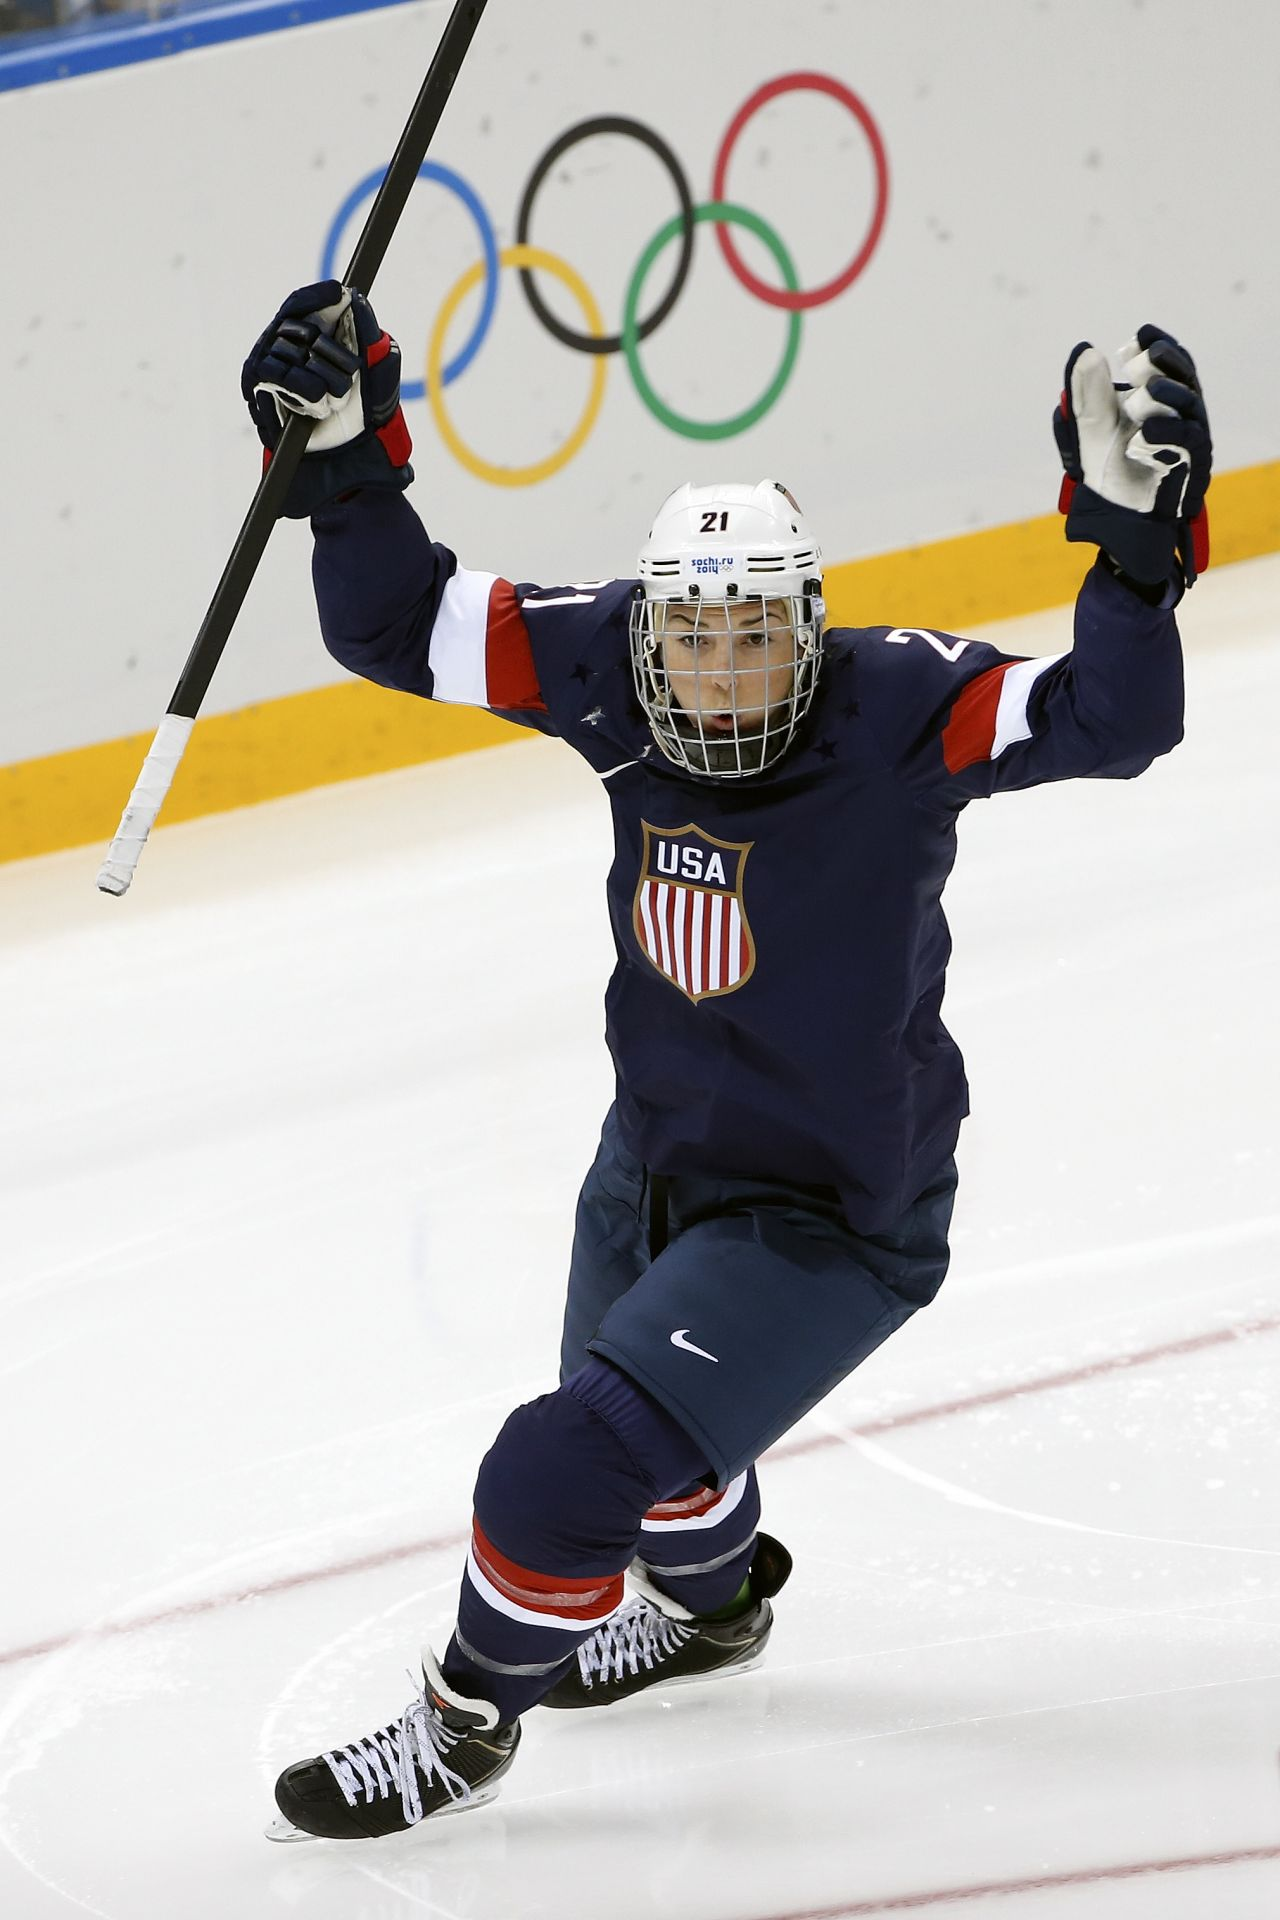 Hilary Knight - 2014 Sochi Winter Olympics, U.S. Hockey Team